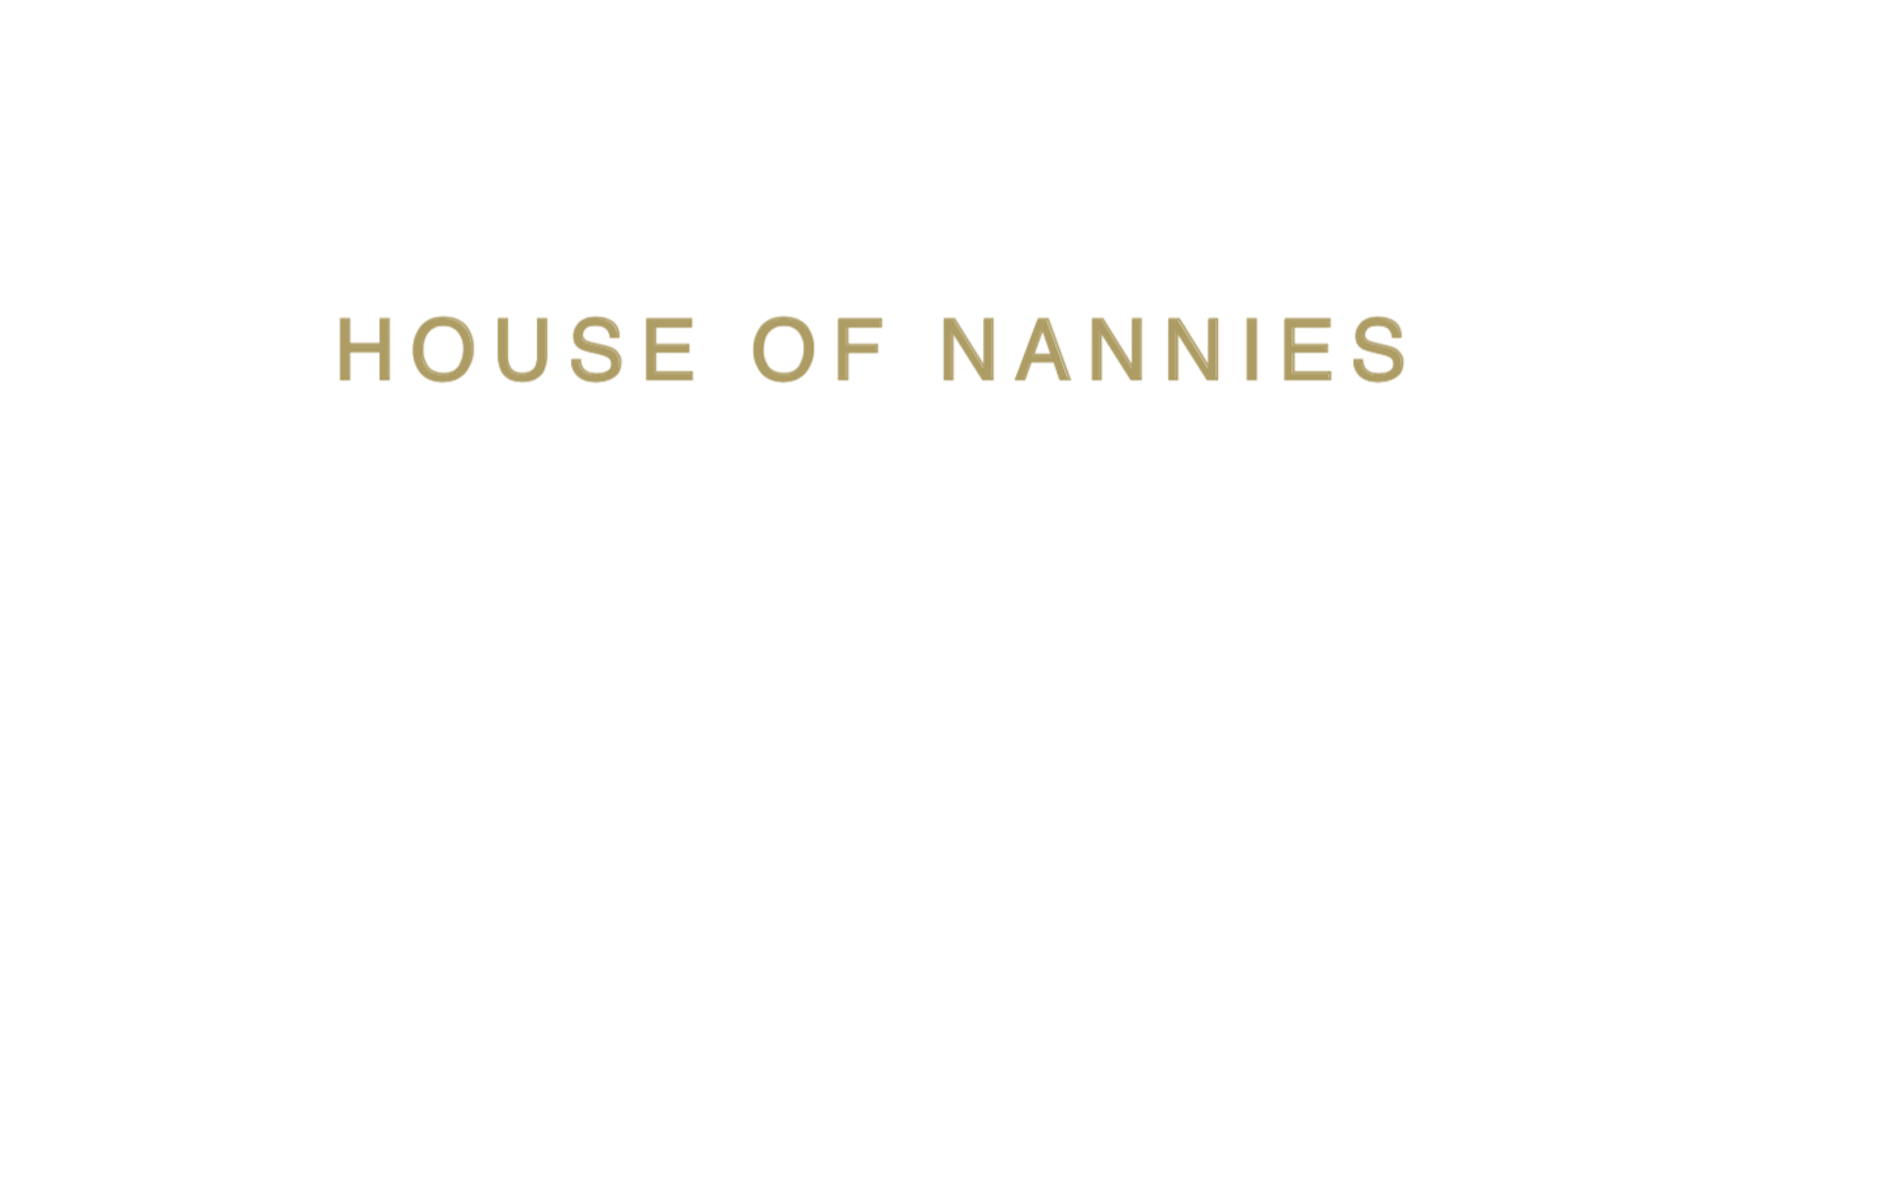 House of Nannies's logo takes you to their list of jobs